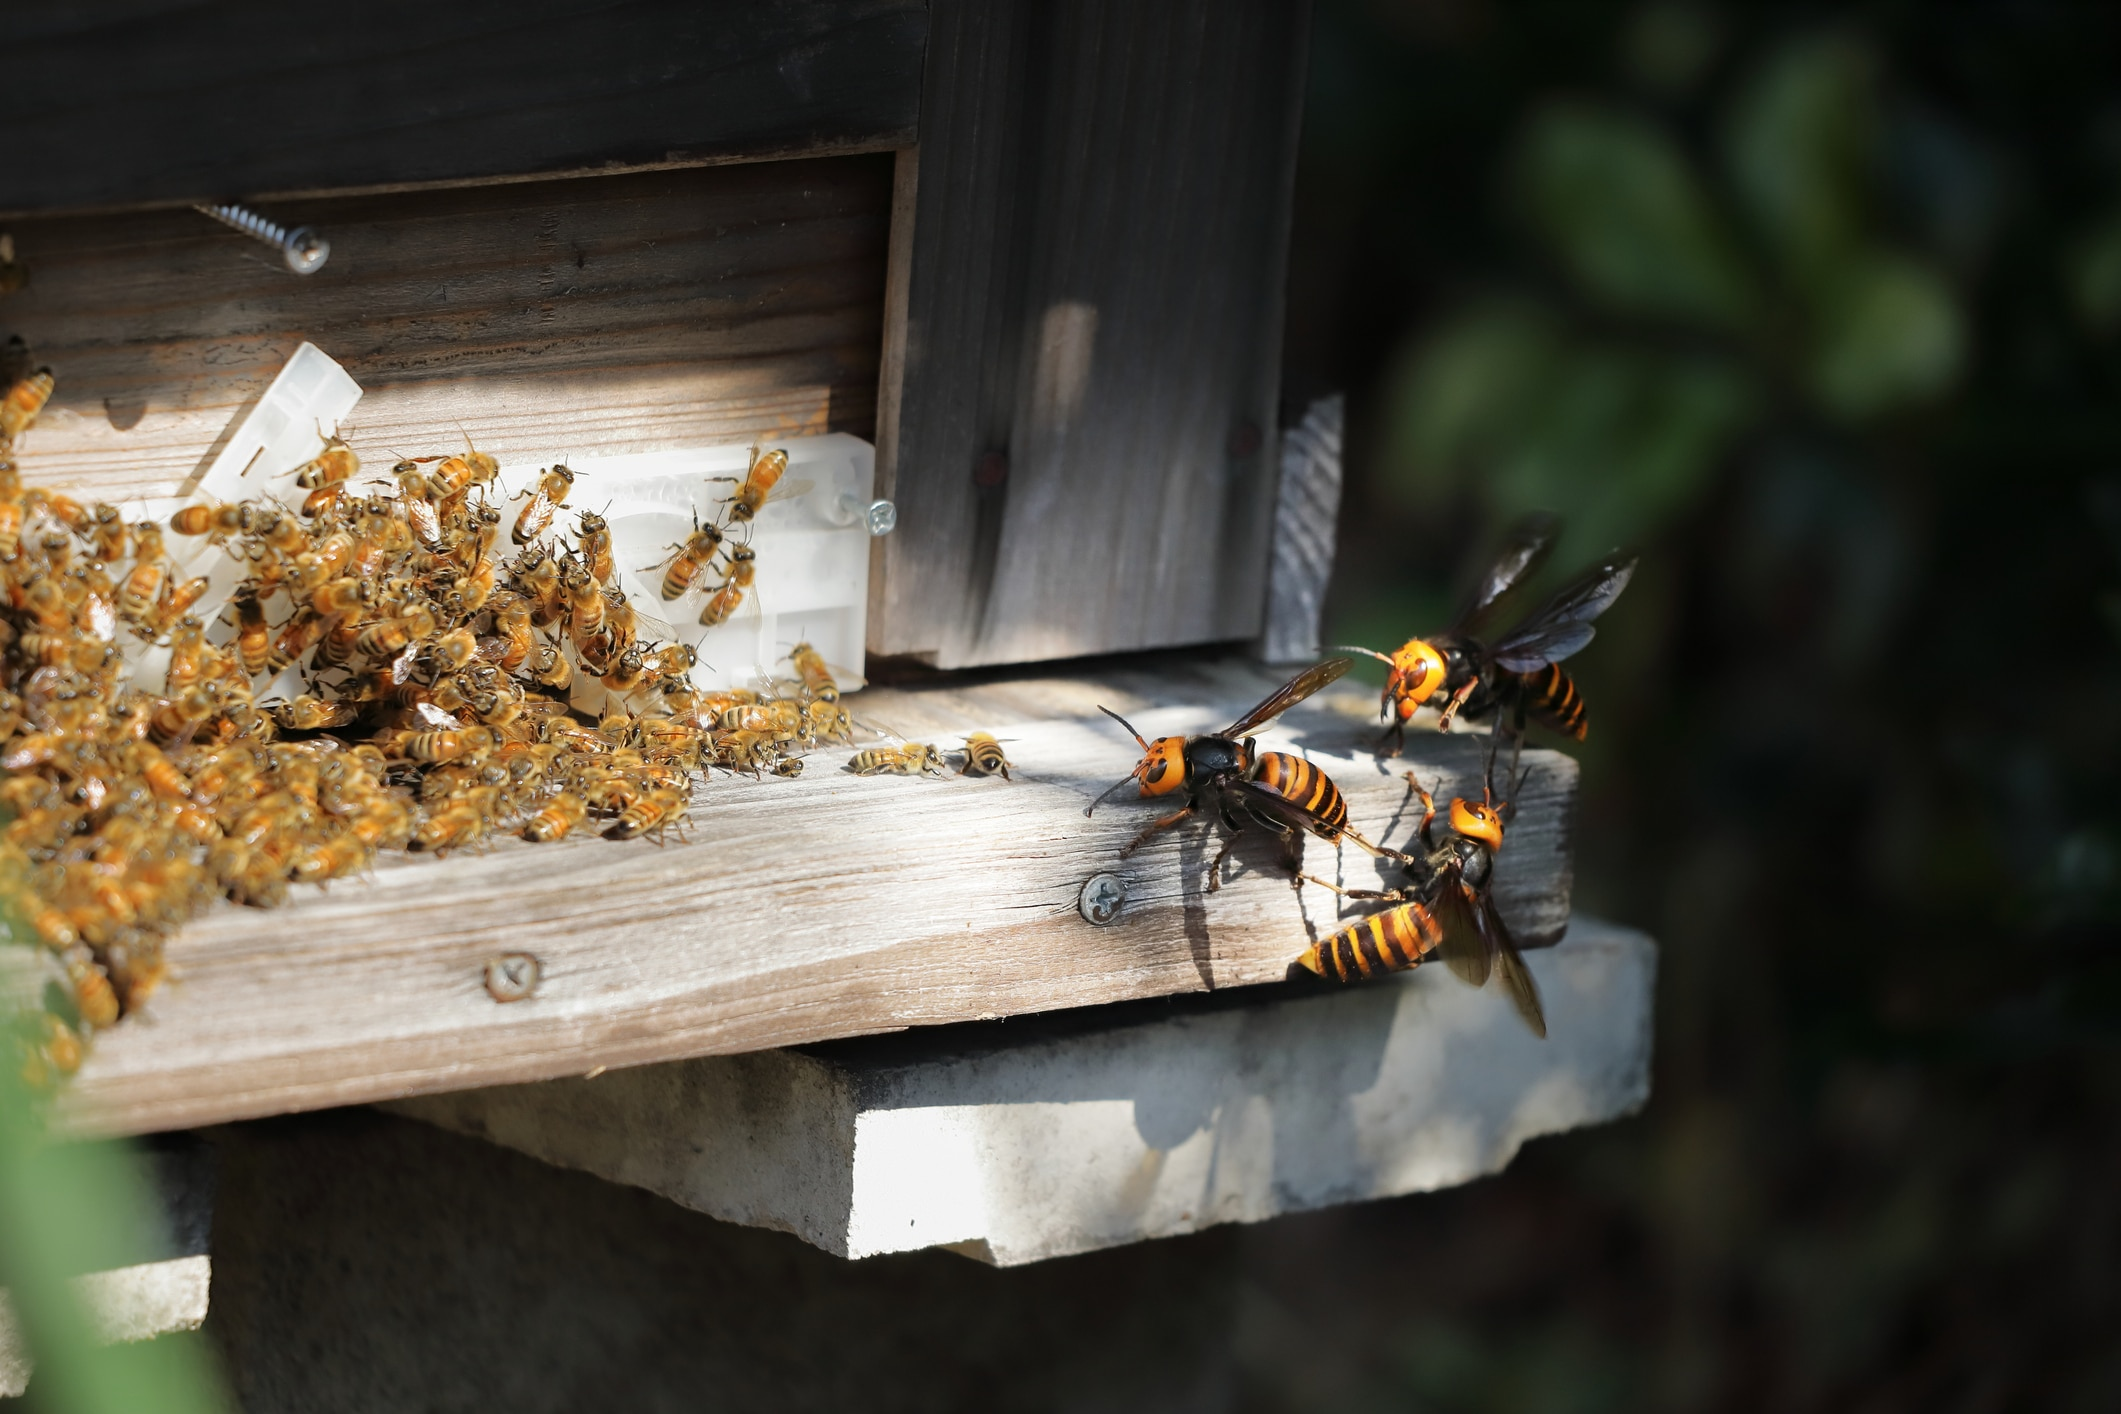 giant hornets attack beehive